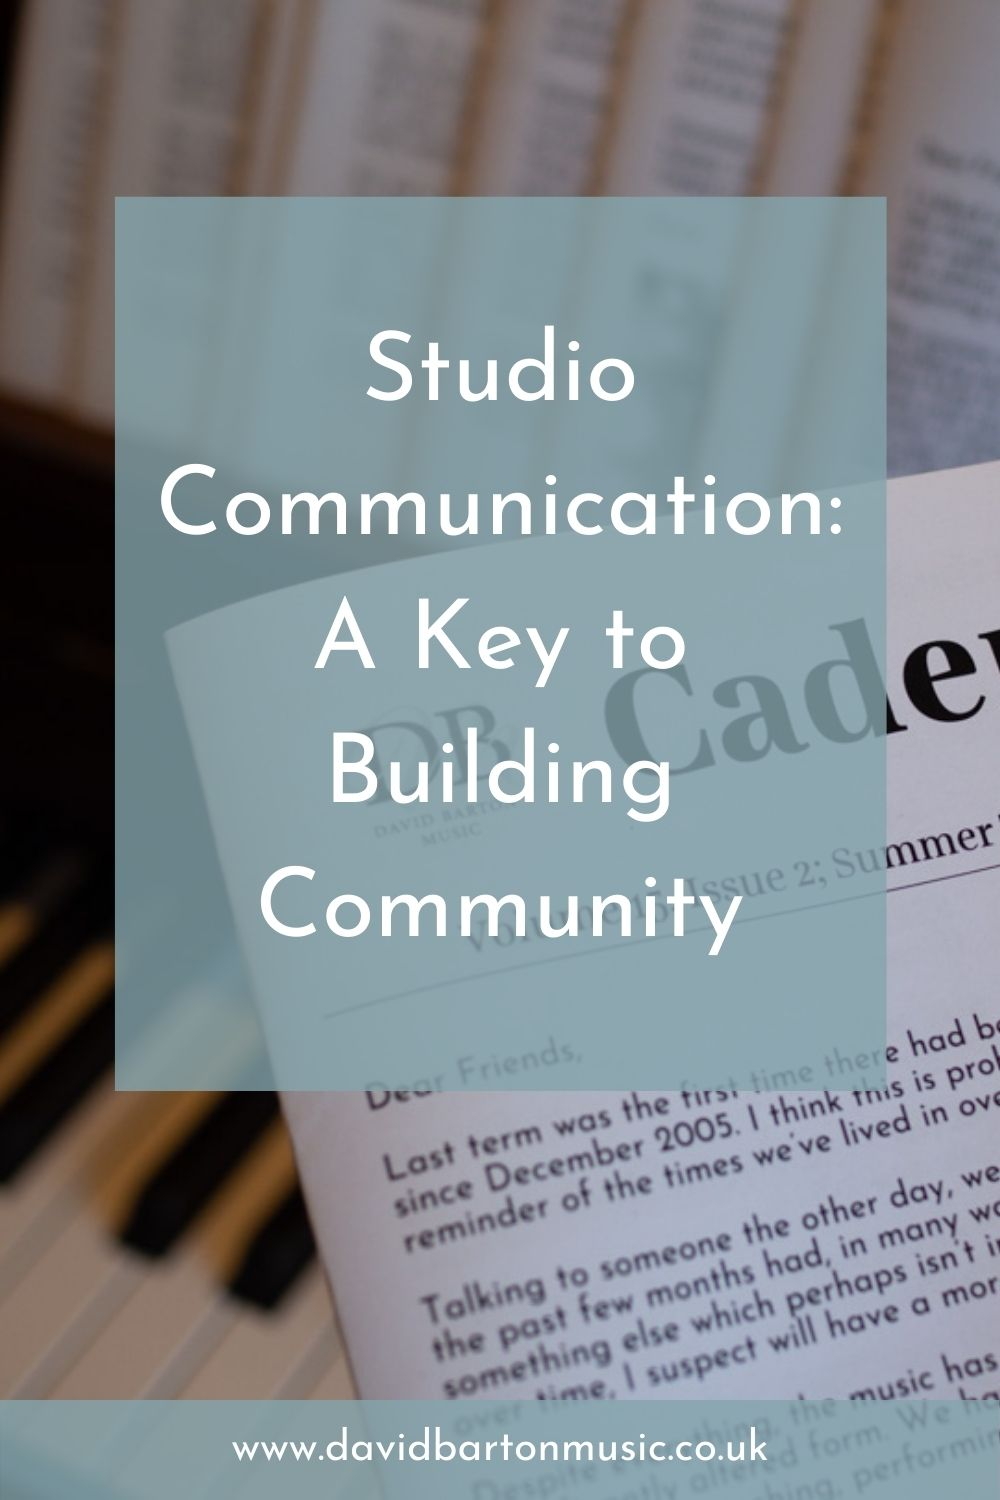 Studio Communication: A Key to Building Community - Pinterest graphic